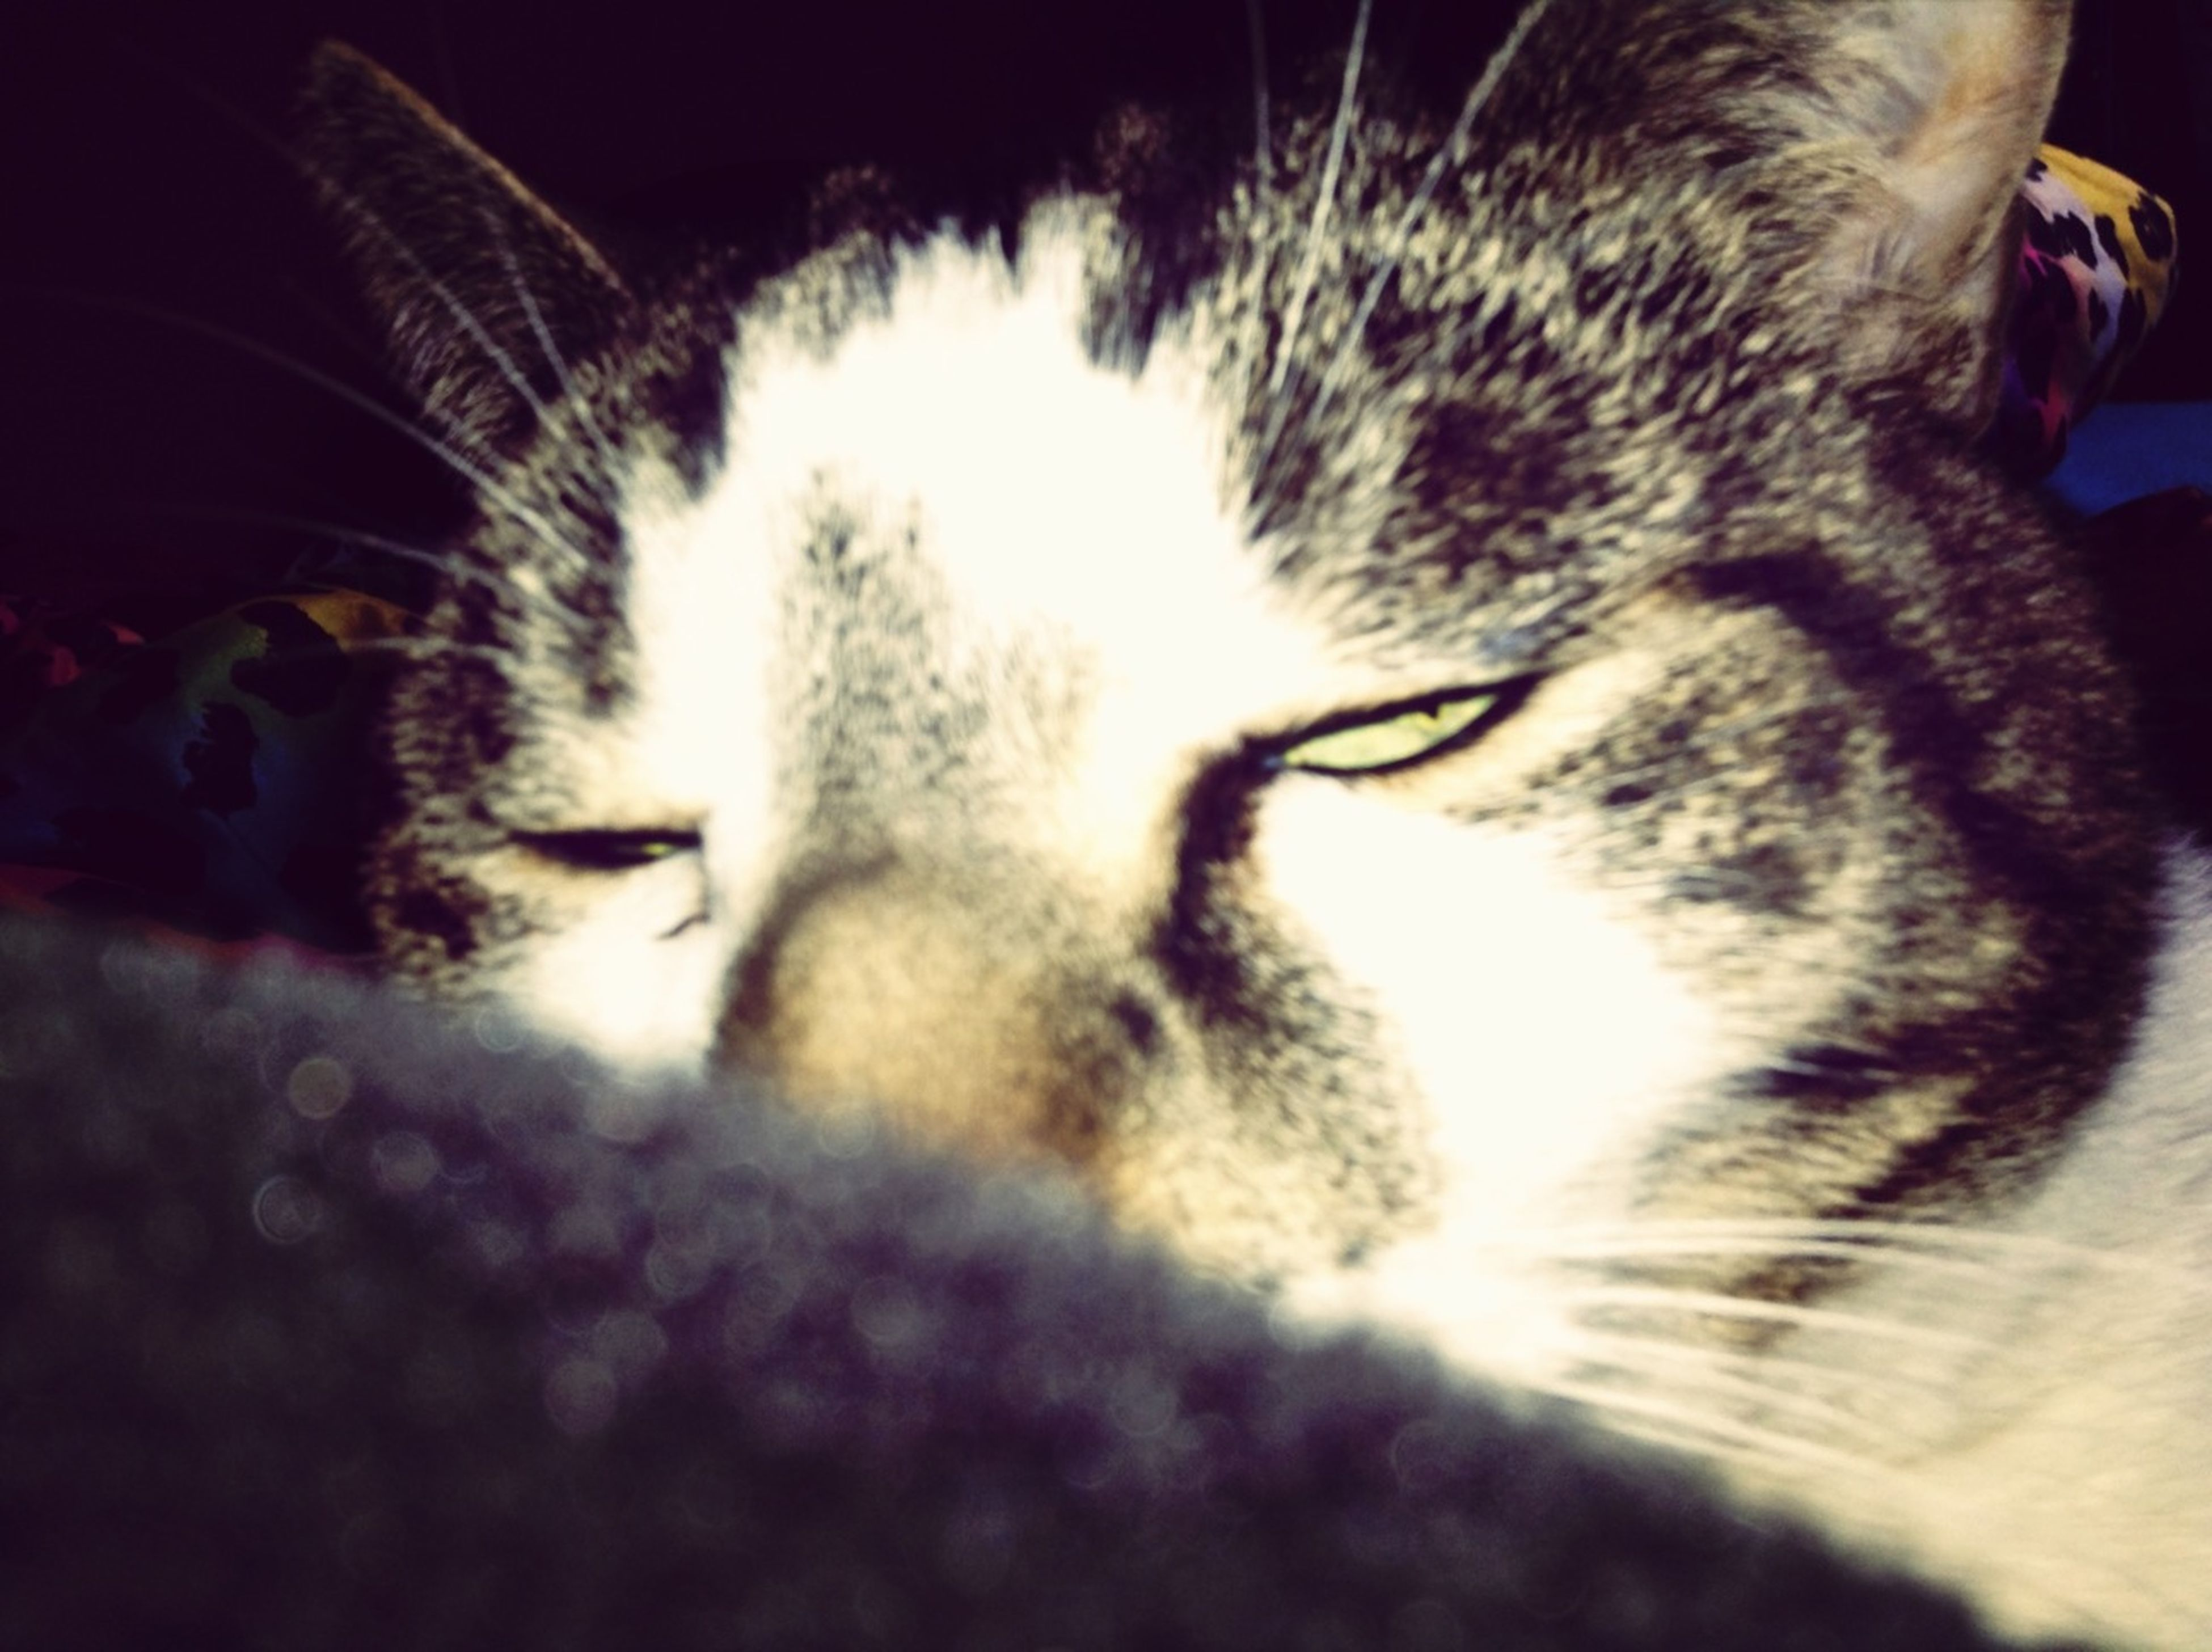 mammal, domestic animals, pets, animal themes, one animal, domestic cat, cat, feline, indoors, close-up, whisker, animal head, sleeping, eyes closed, part of, relaxation, animal body part, lying down, night, no people